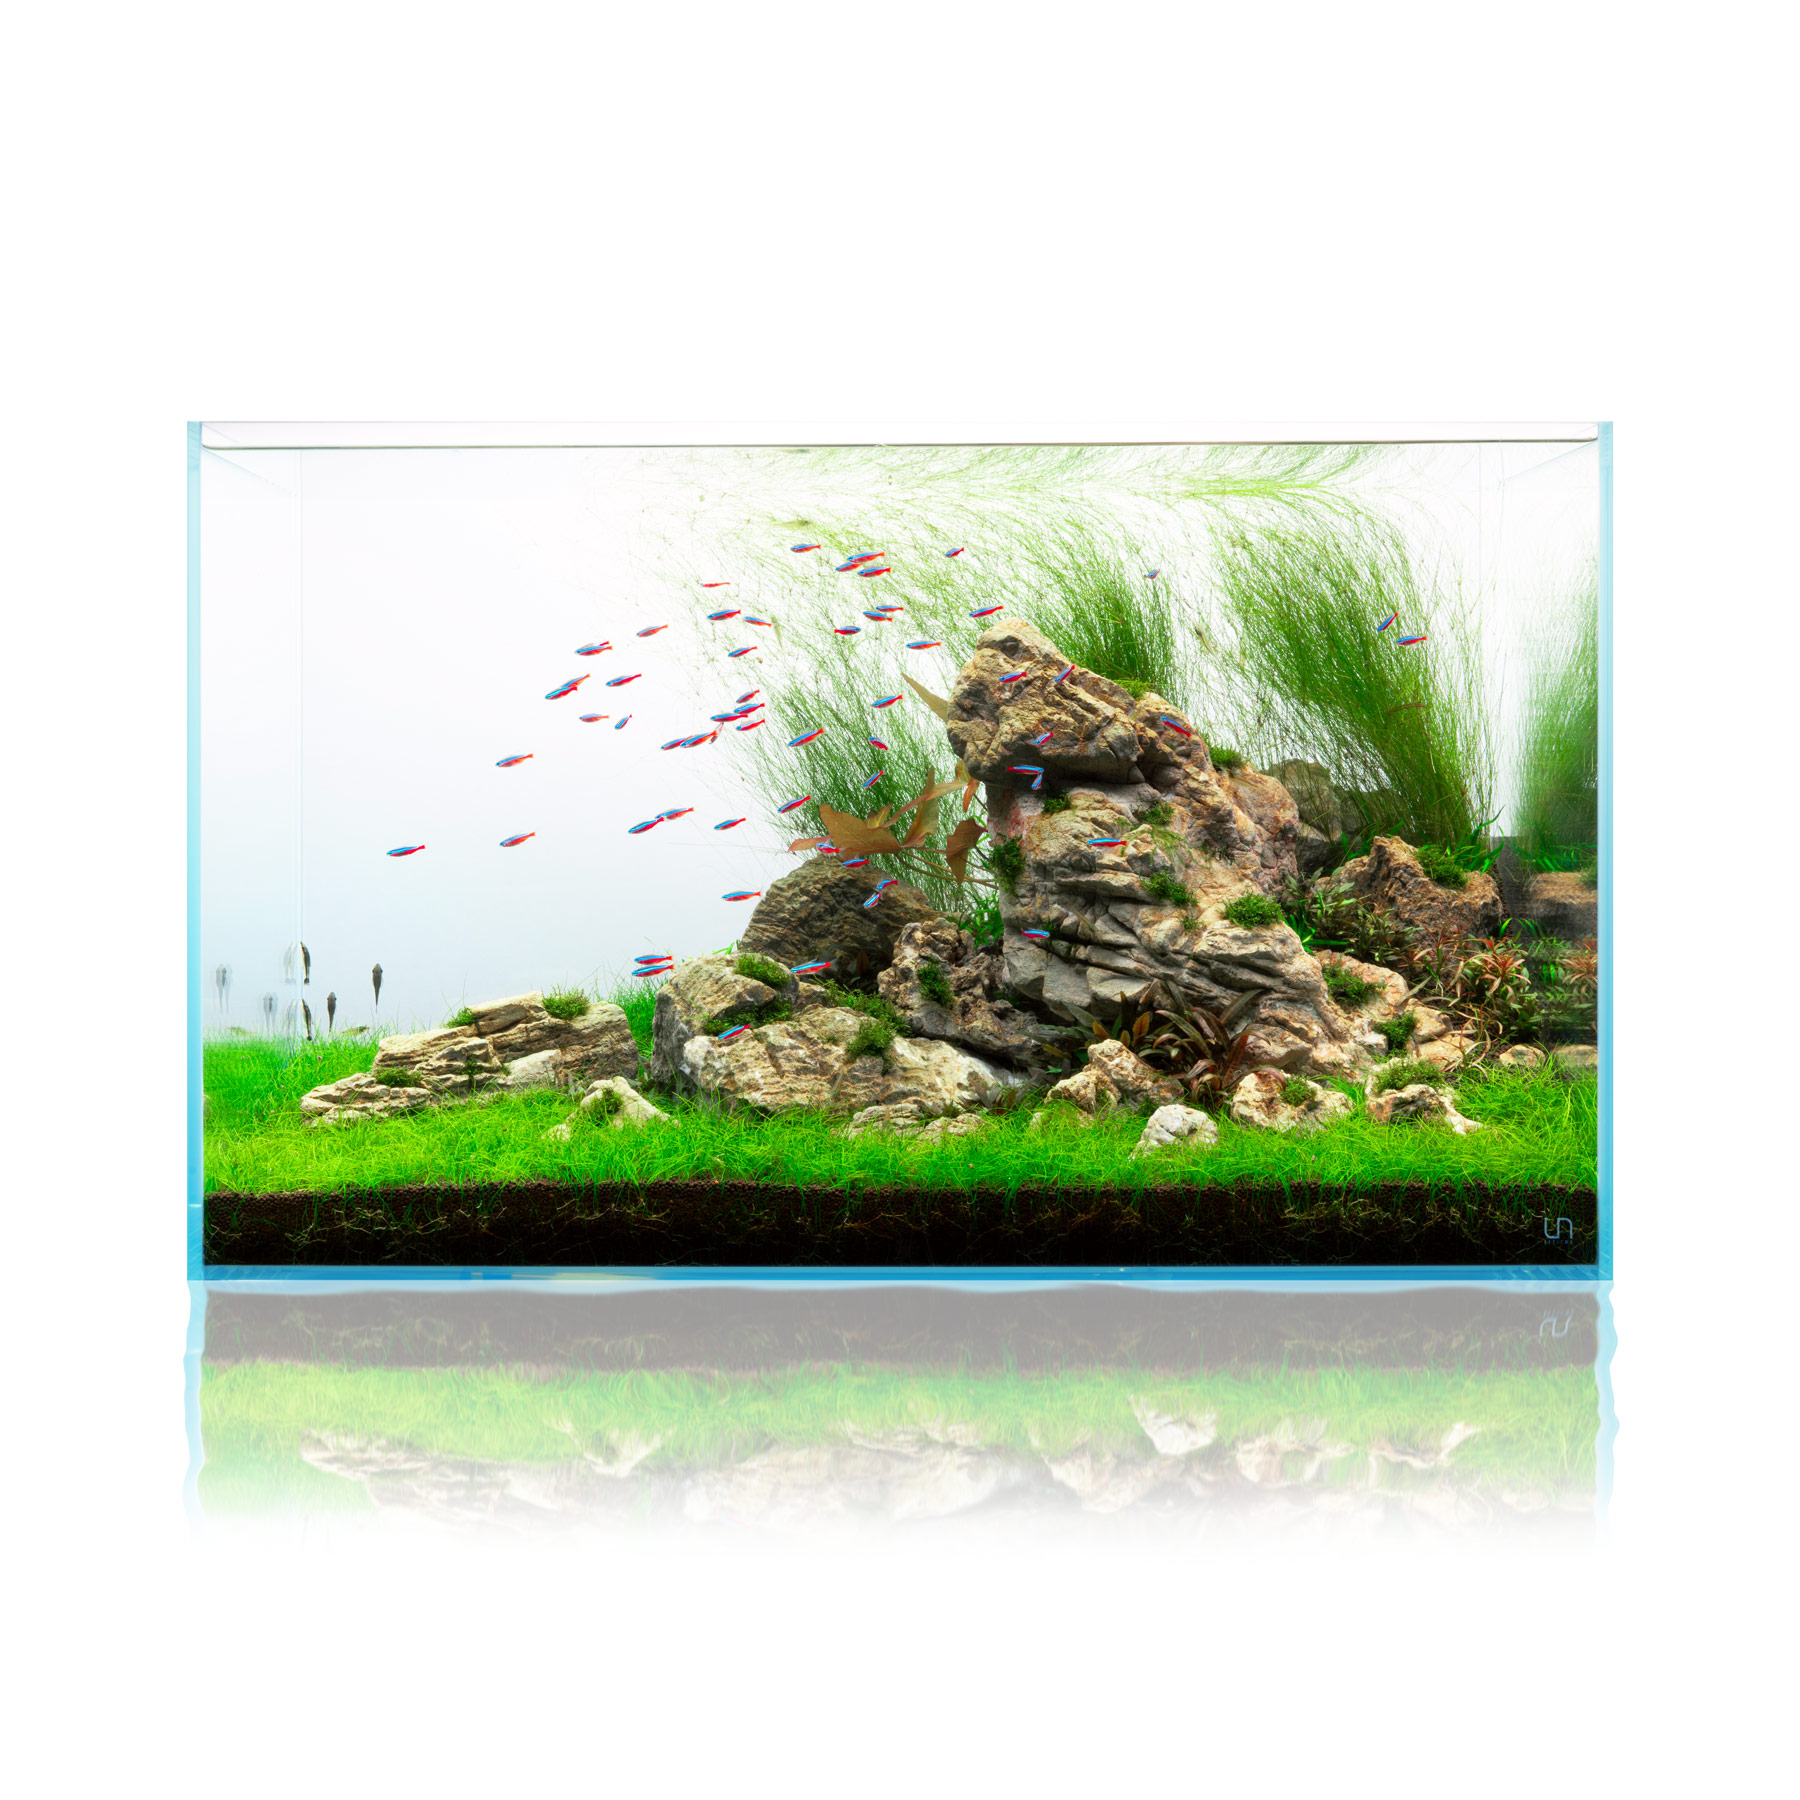 Elephant Skin Stone Popular Planted Aquarium Hardscape for Aquascaping